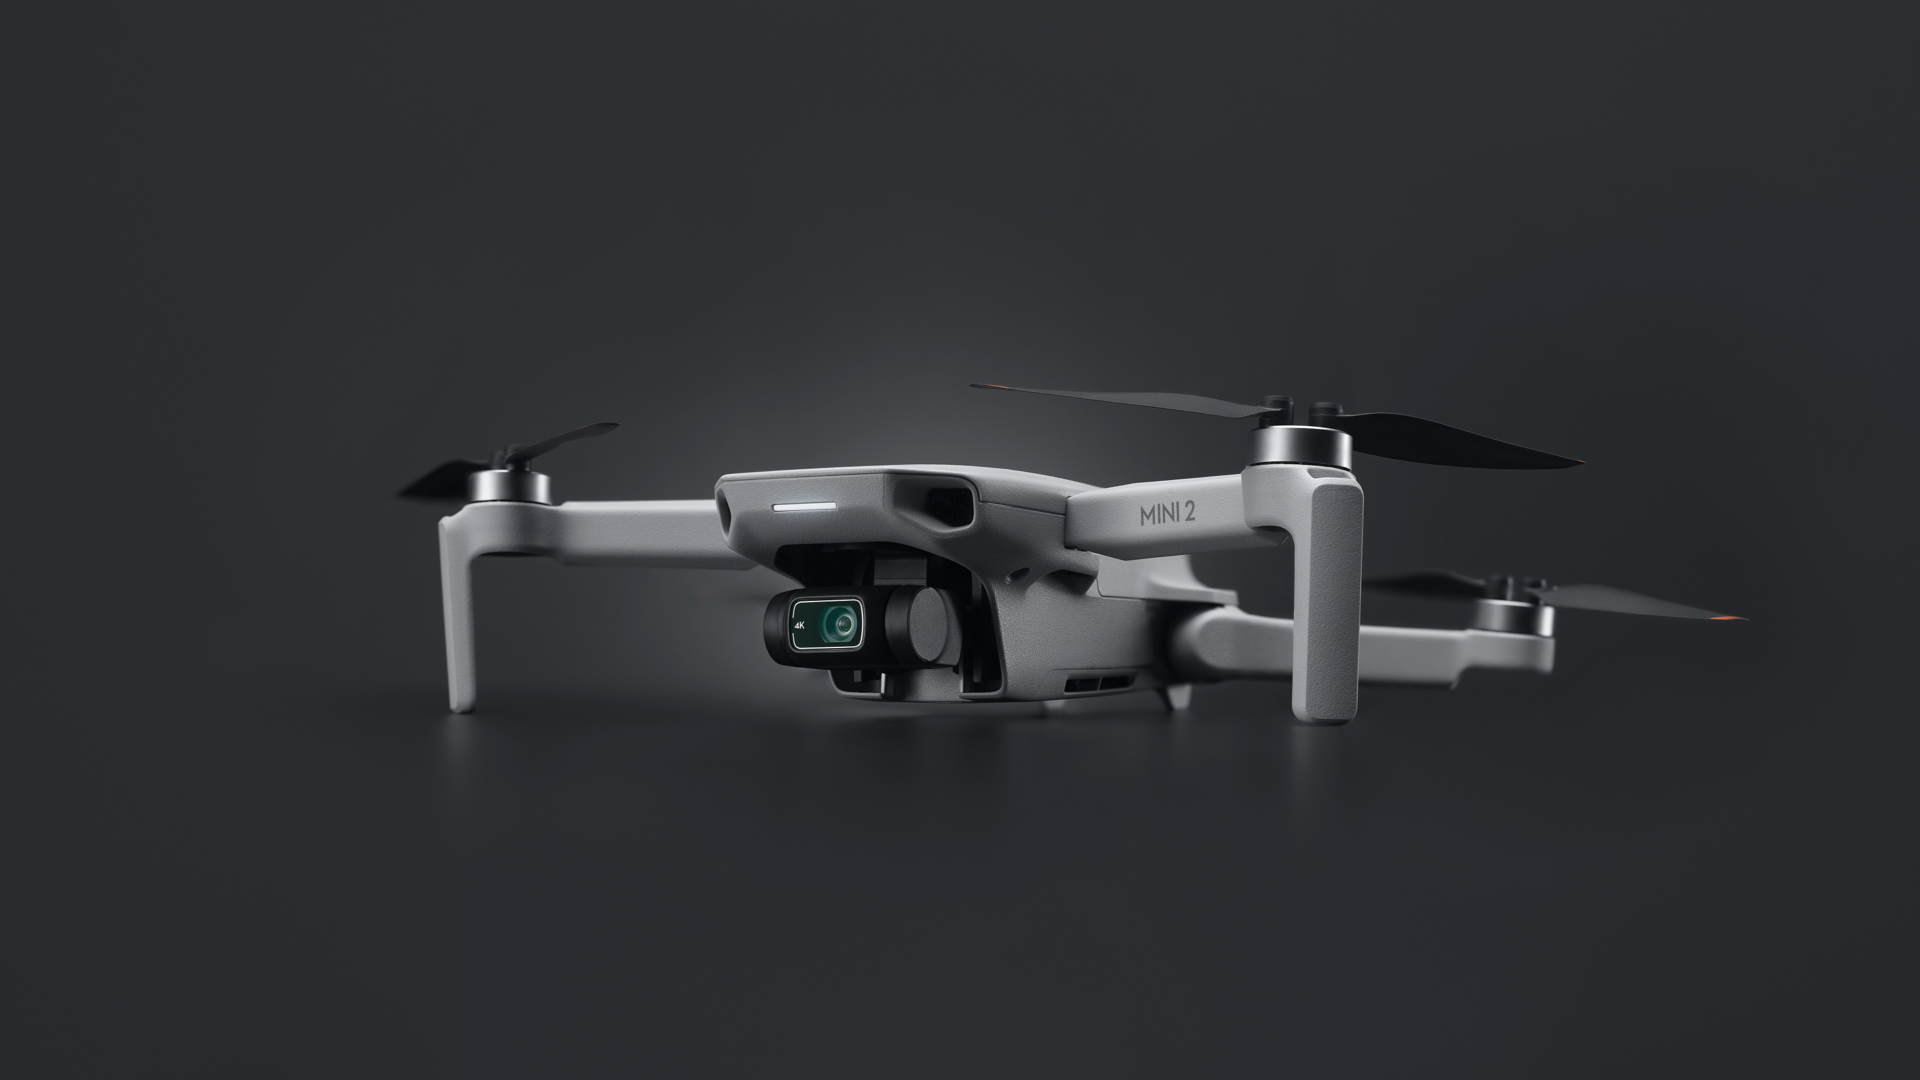 DJI Fly 1.2 includes images of Mini 2 & remote [APK Insight] - 9to5Google